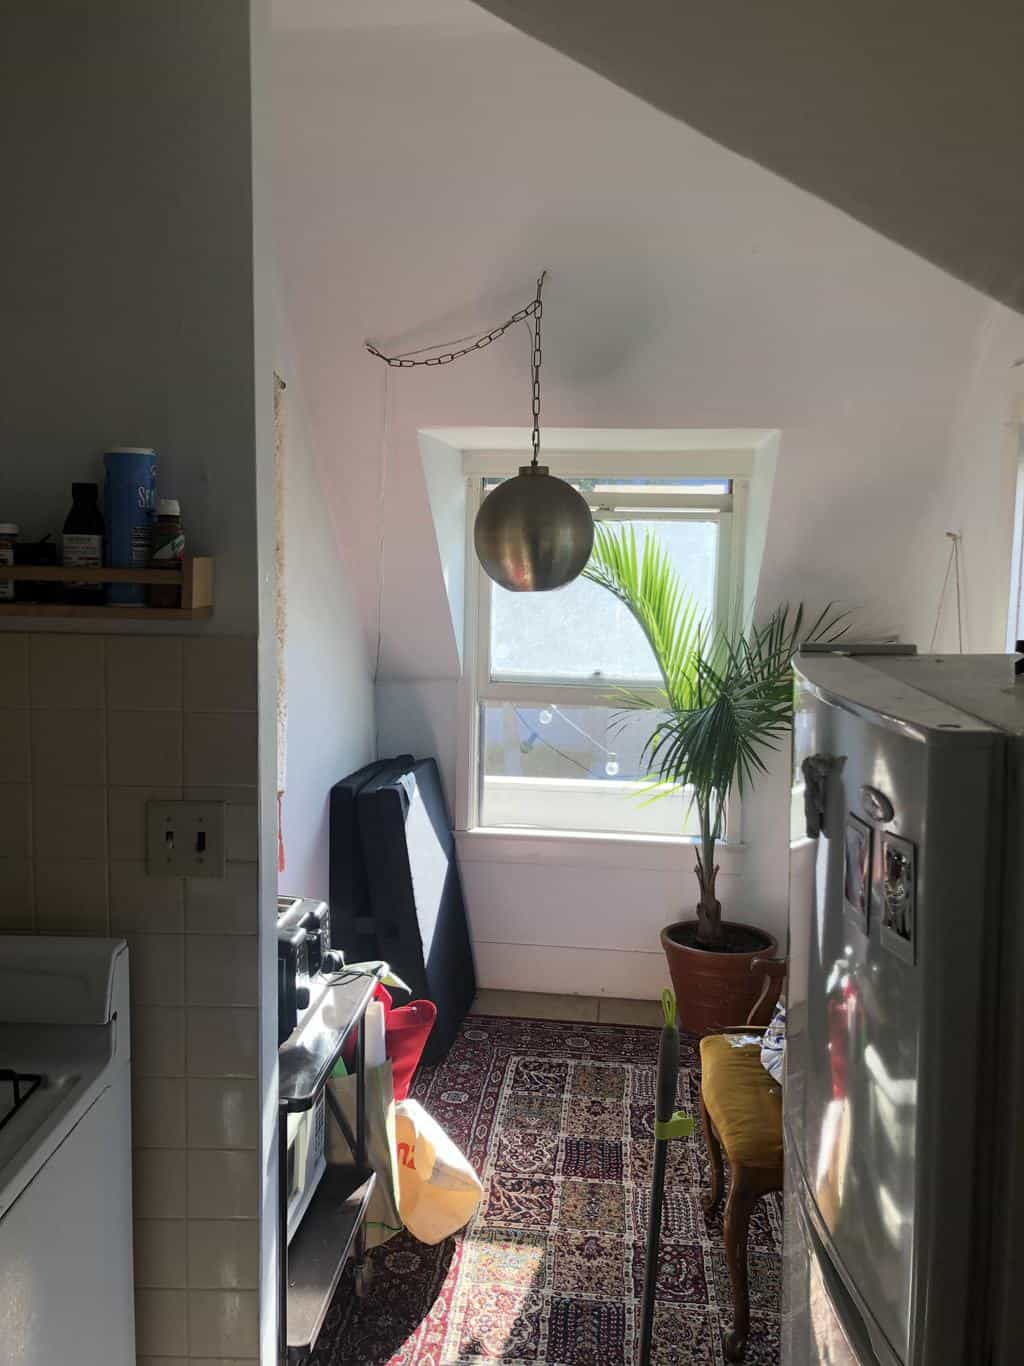 Small dinning room with no table and old light fixture.